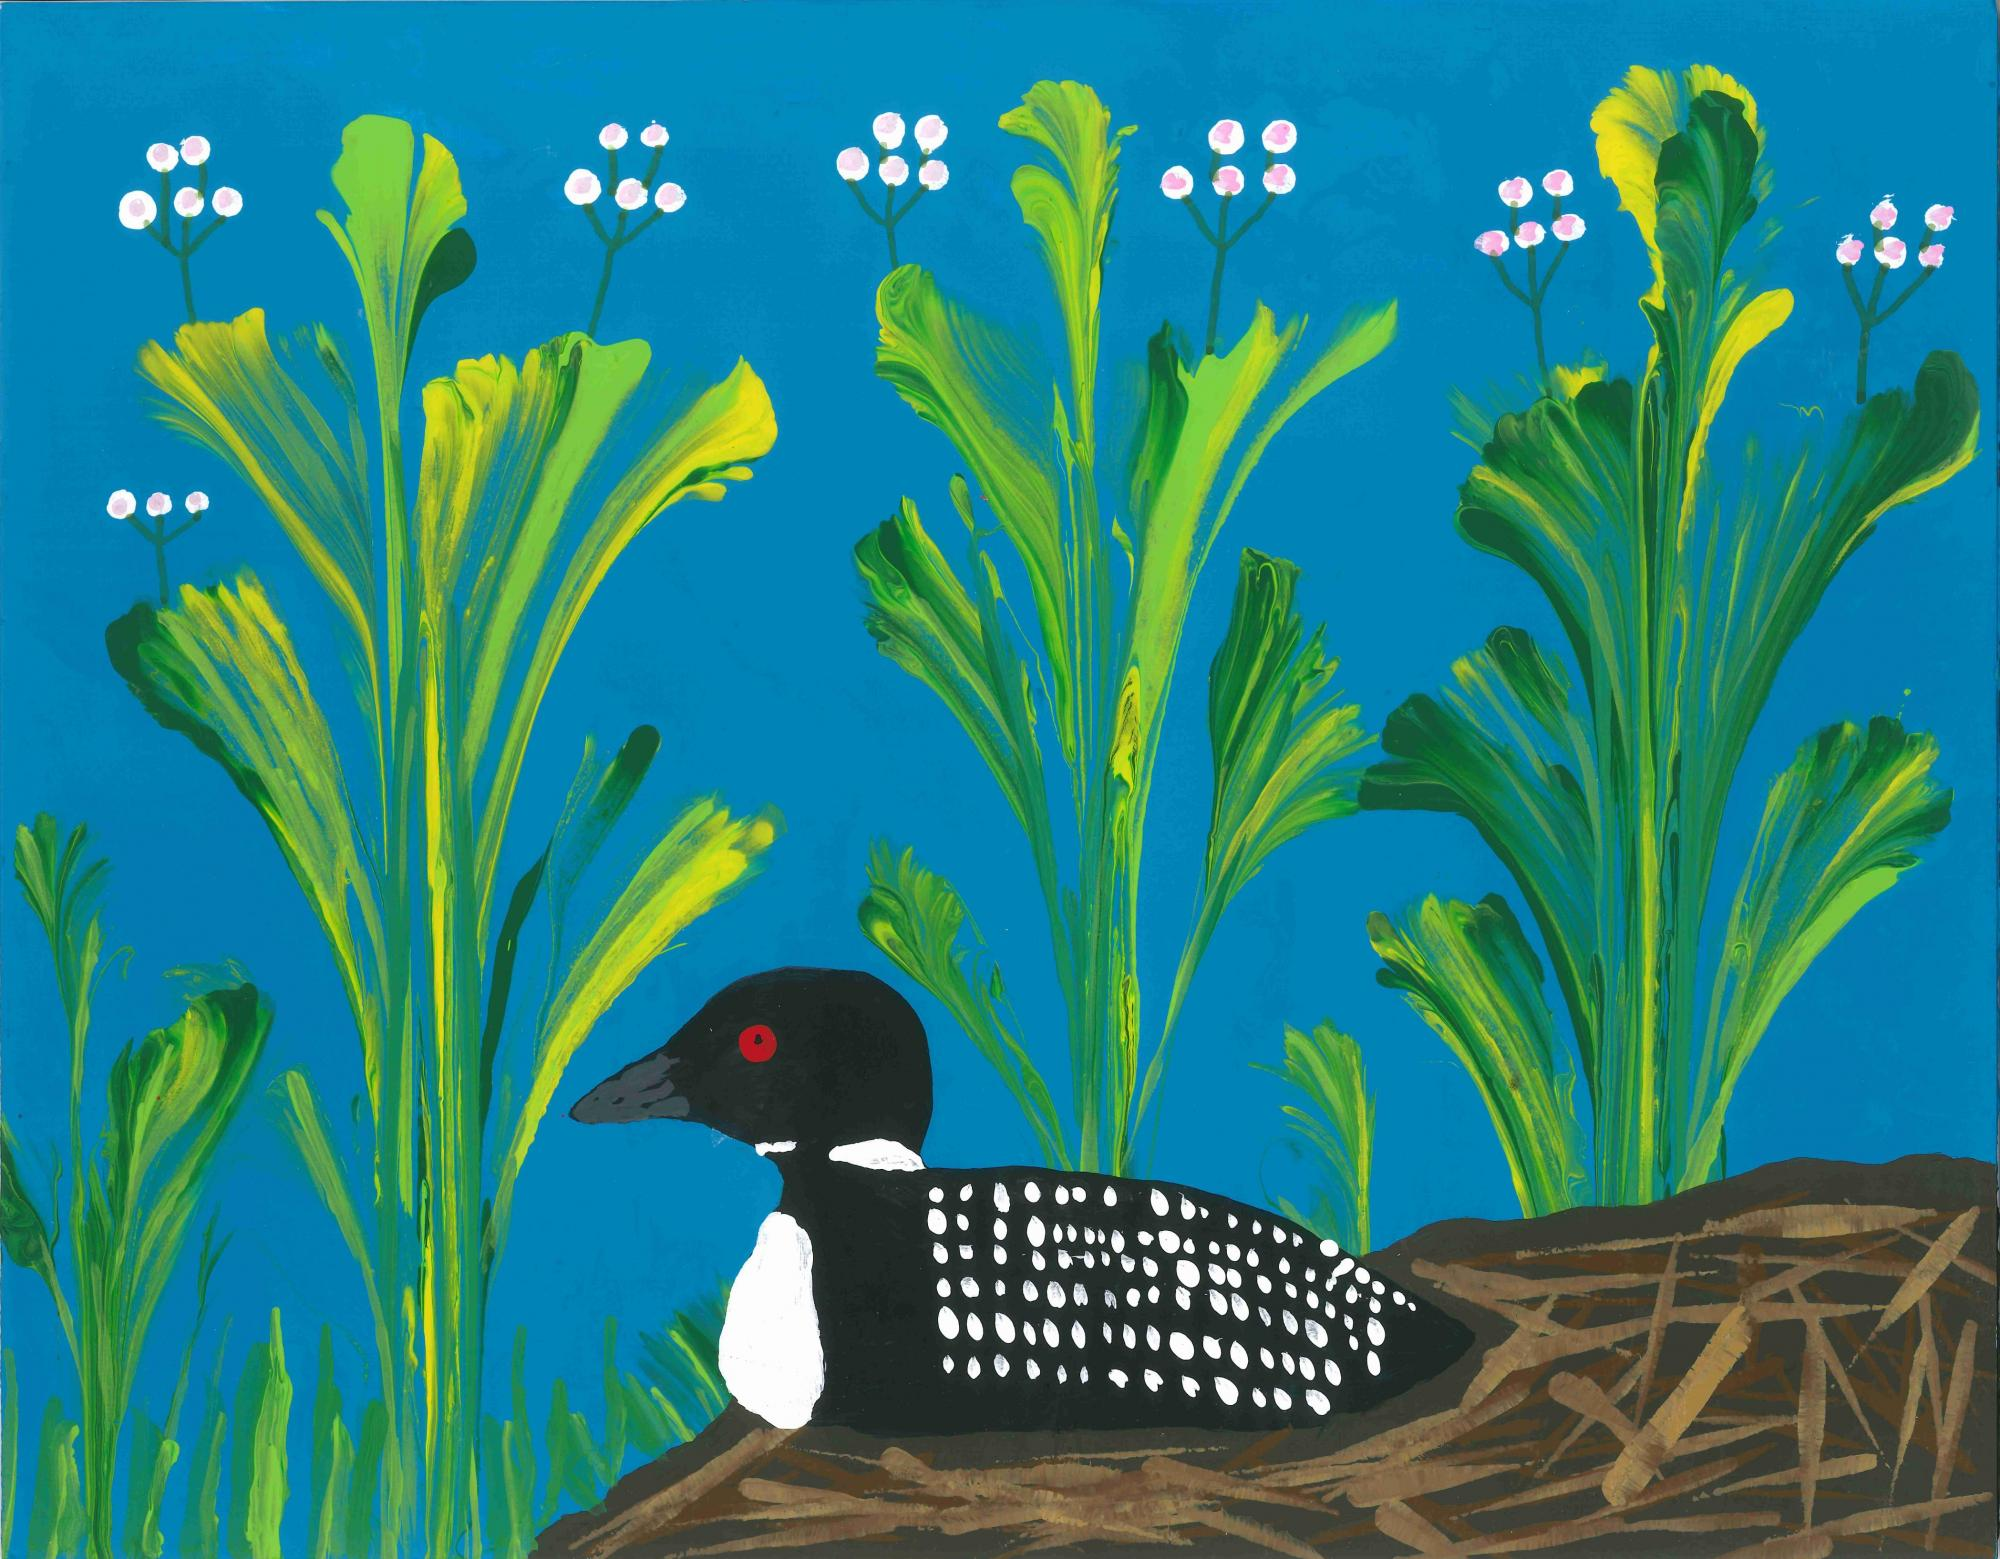 """""""Loon by the Lake"""" Seth Landers, age 9 Cumming, GA. United States Whitlow Elementary 2019 Art Finalist"""